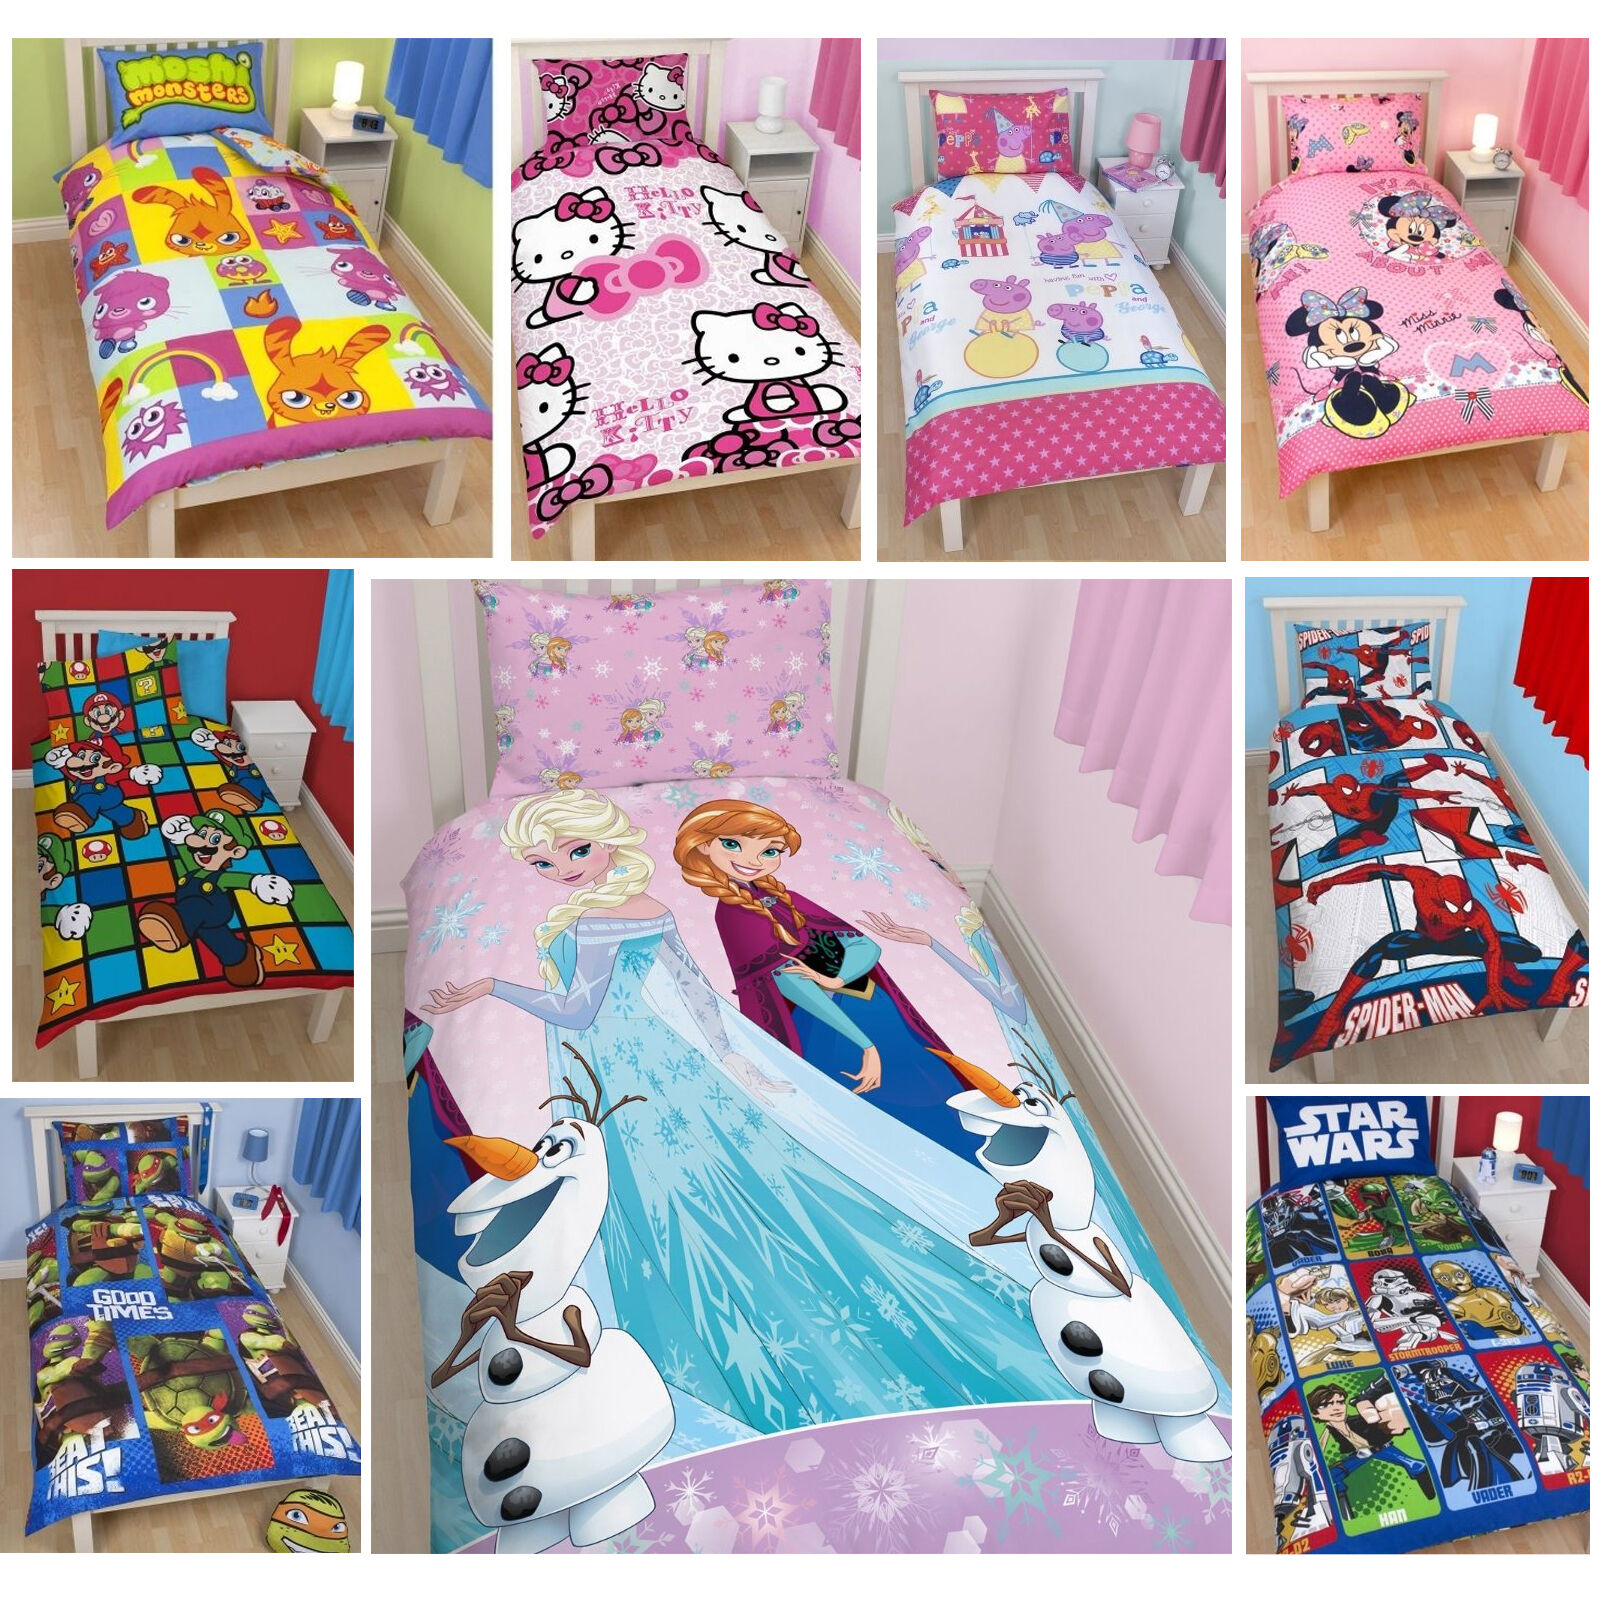 housse de couette officiel licence personnage disney enfant parure de lit simple ebay. Black Bedroom Furniture Sets. Home Design Ideas